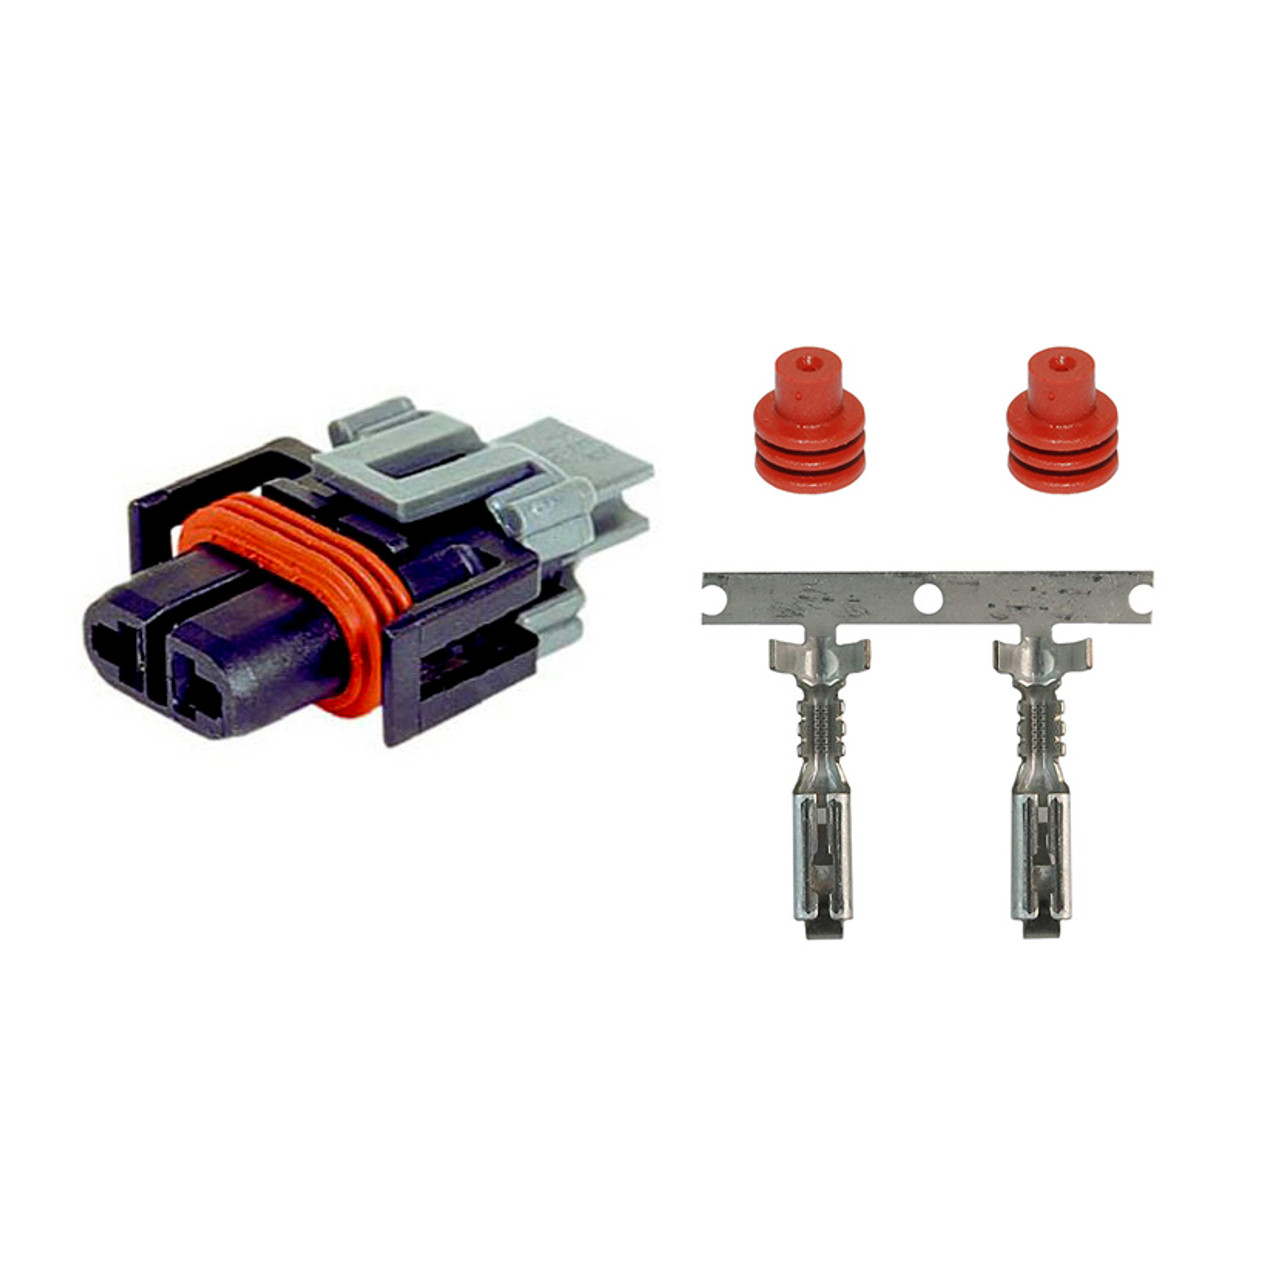 2 Way Metri-Pack 280 Series Female Connector Kit 12124819